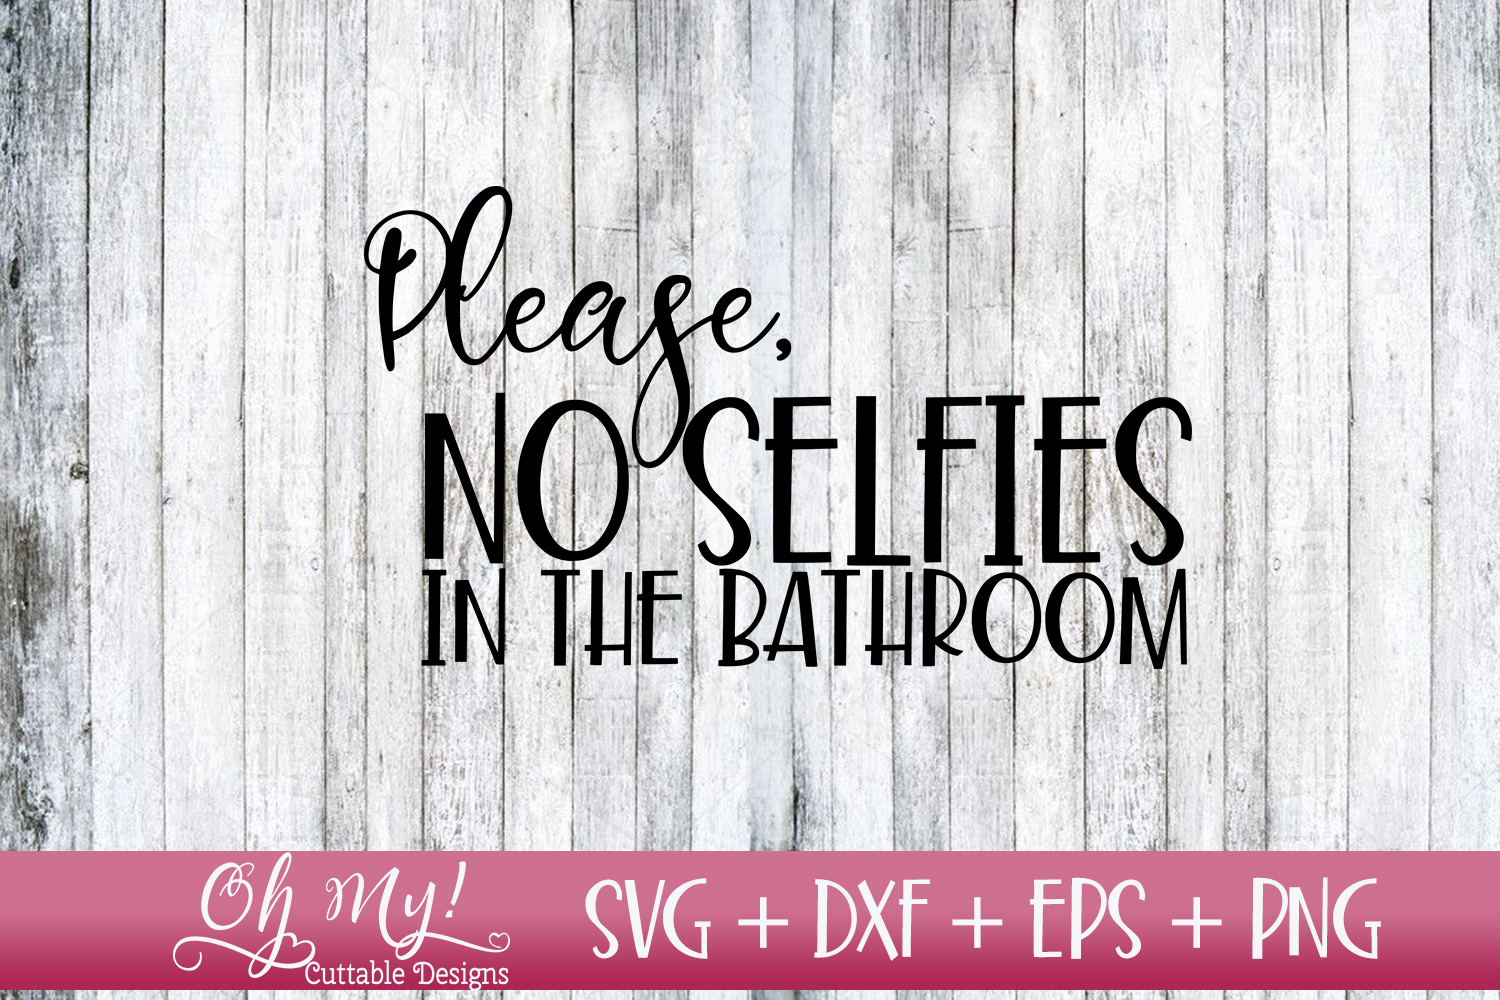 No Selfies In The Bathroom - SVG DXF EPS PNG example image 1